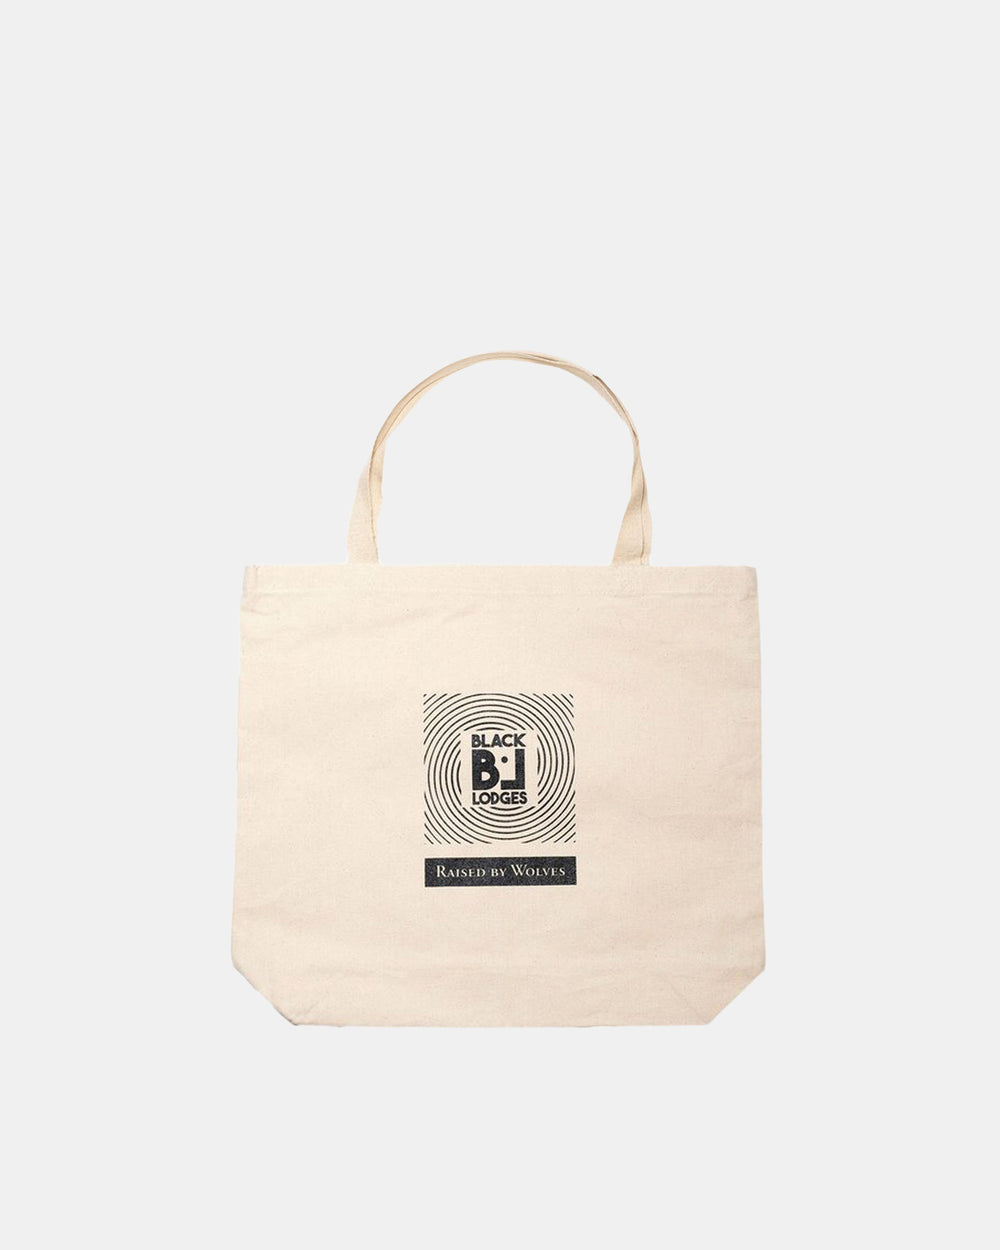 Raised by Wolves - RBW/Black Lodges Tote Bag (Natural)